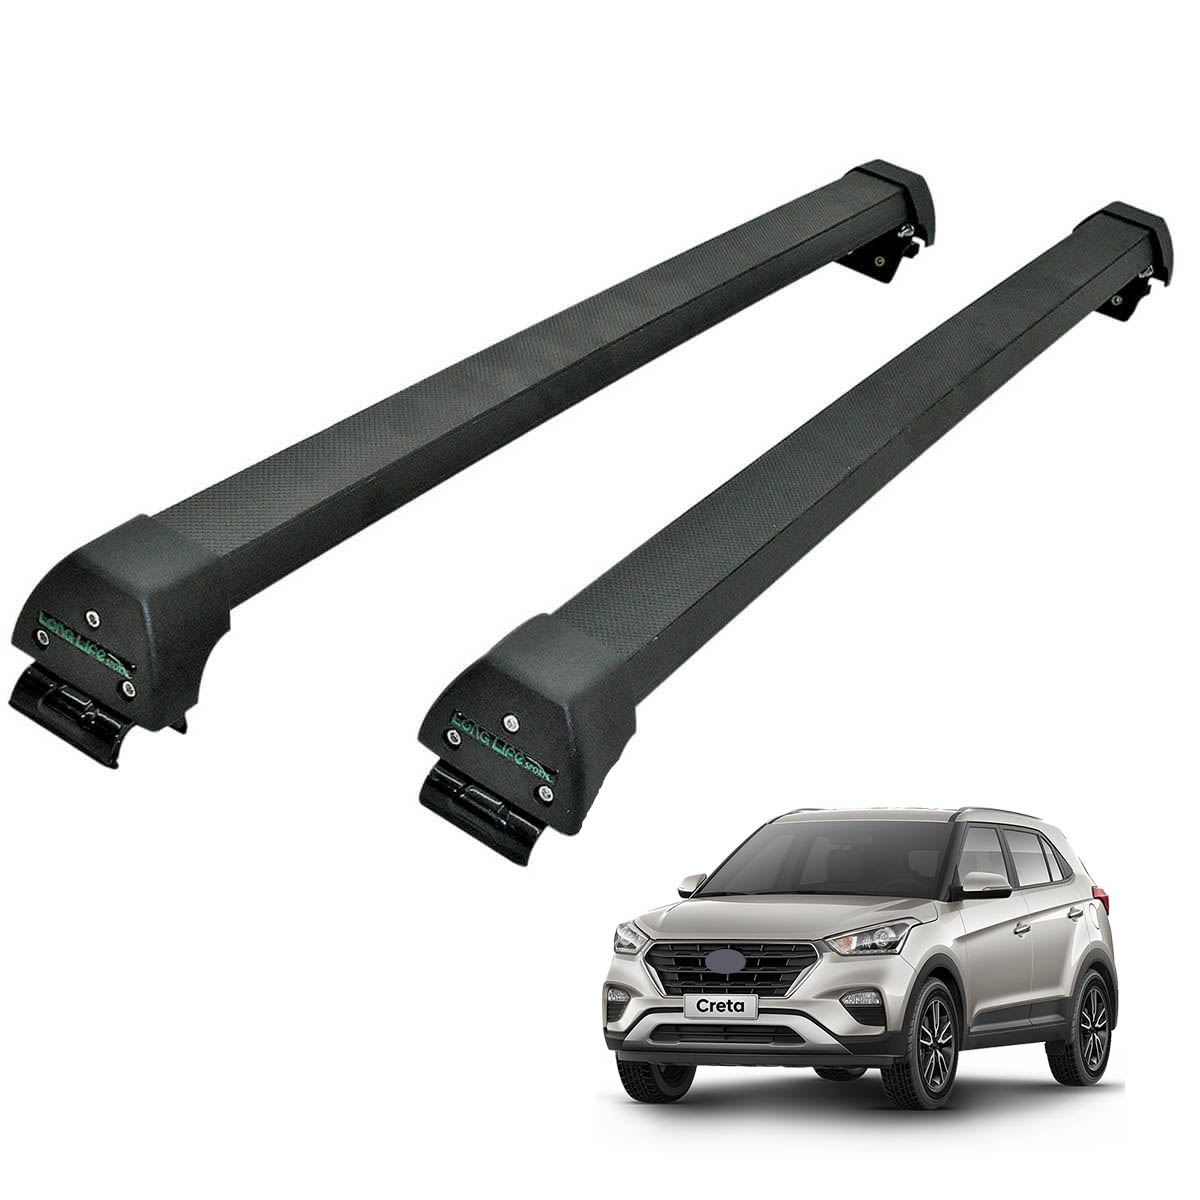 Rack de teto Hyundai Creta 2017 Long Life Sports preto